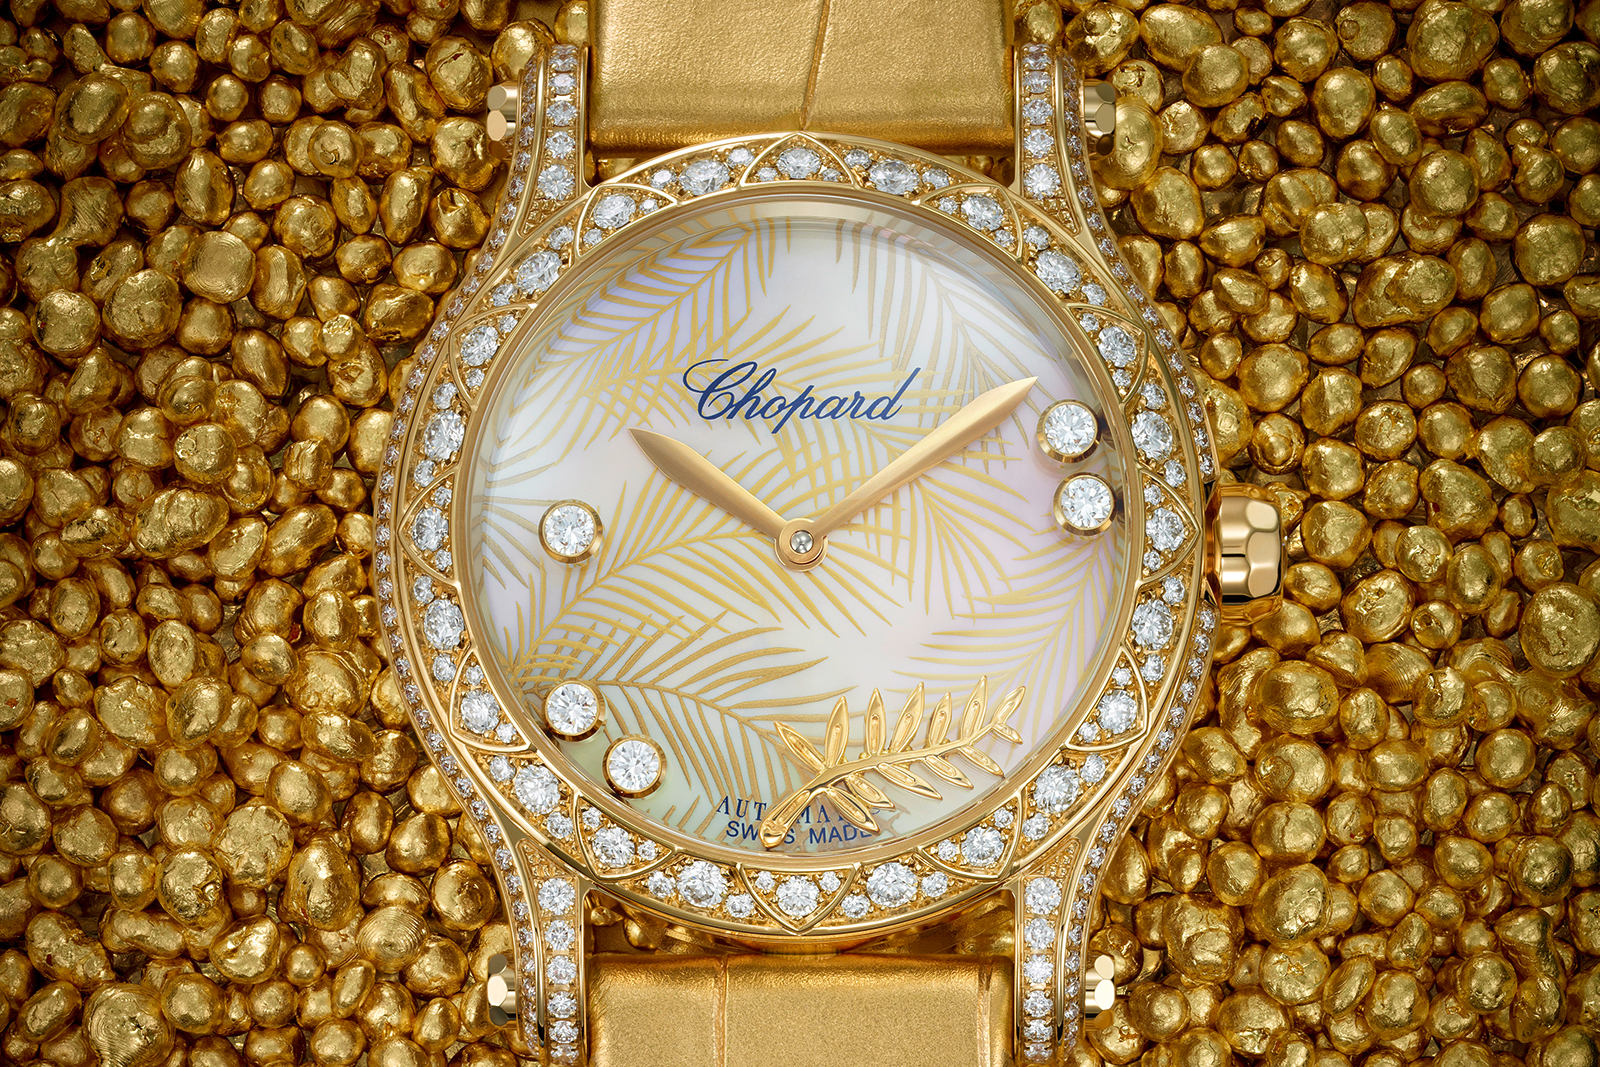 Chopard 'Happy Palm' watch in 100% ethically fair mined 18k gold, mother of pearl dial and brilliant cut diamonds